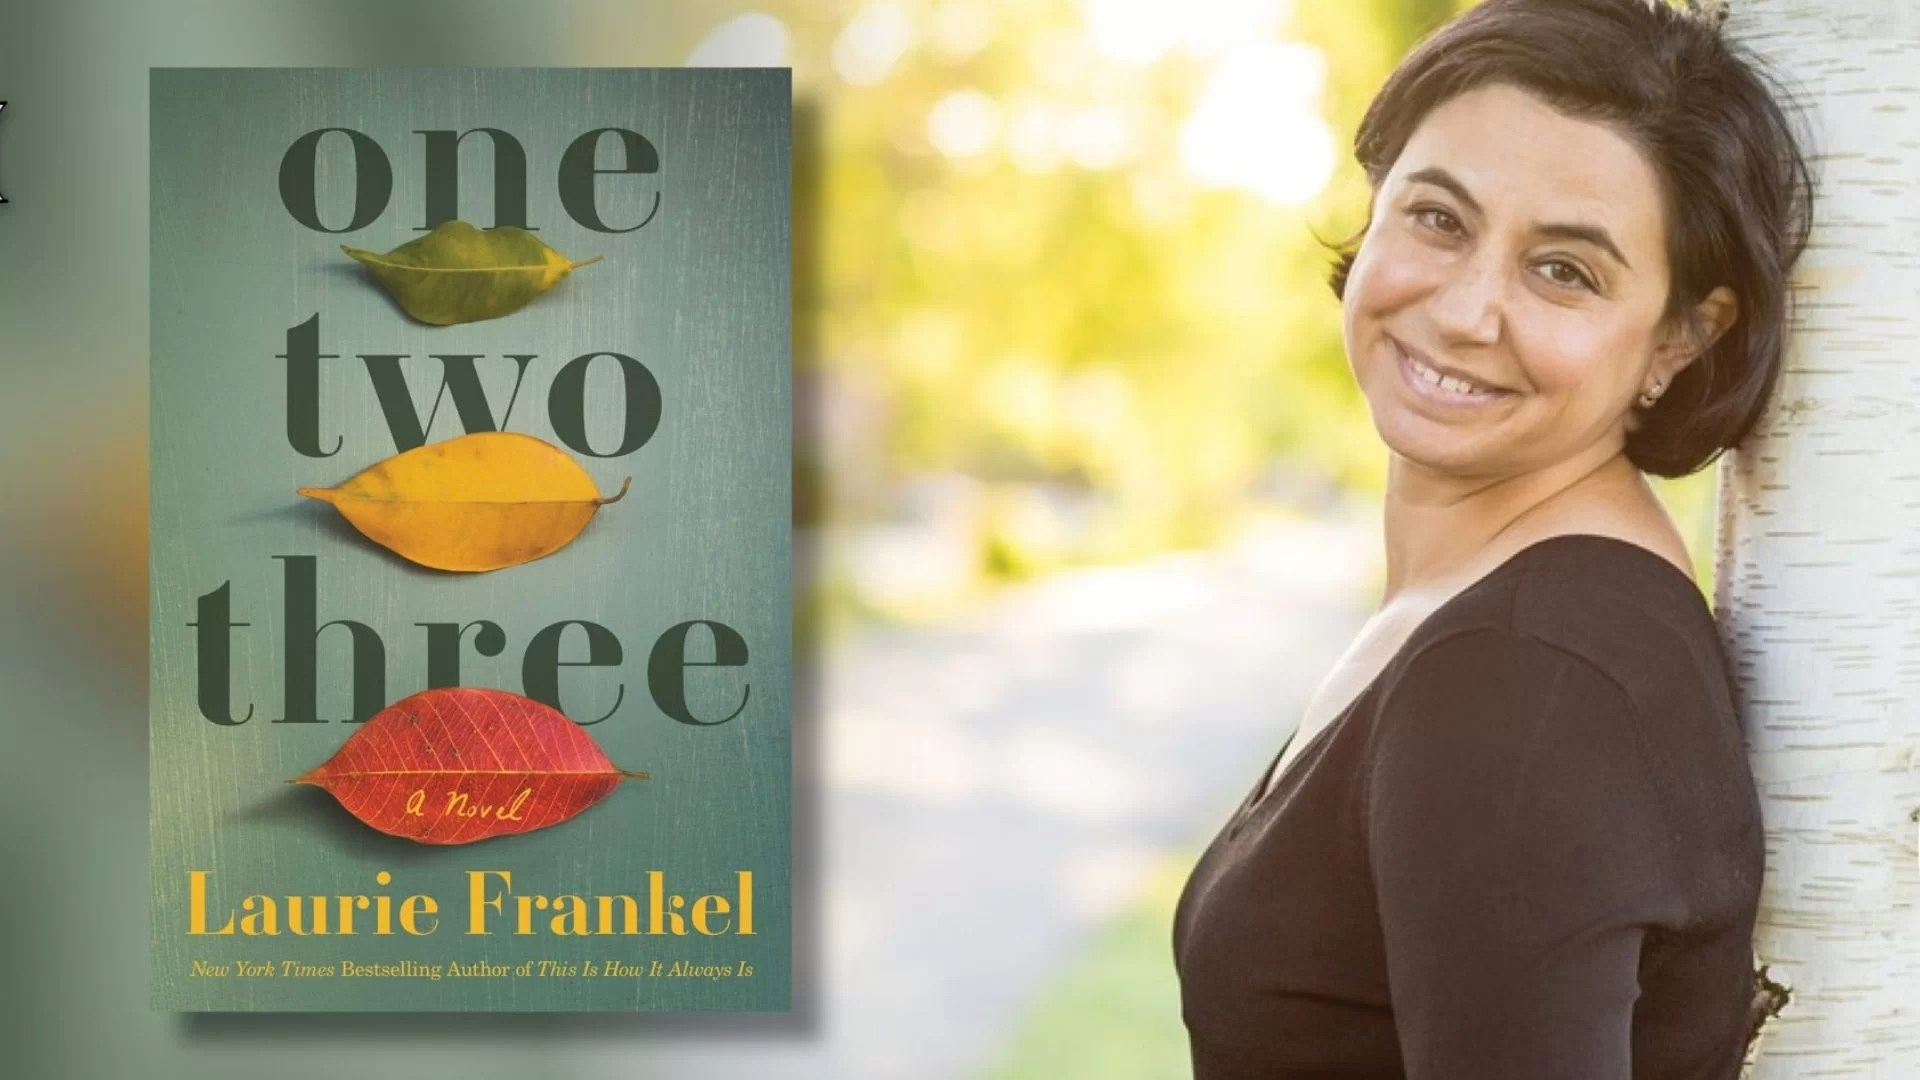 An Exclusive Interview With Laurie Frankel Author of One Two Three